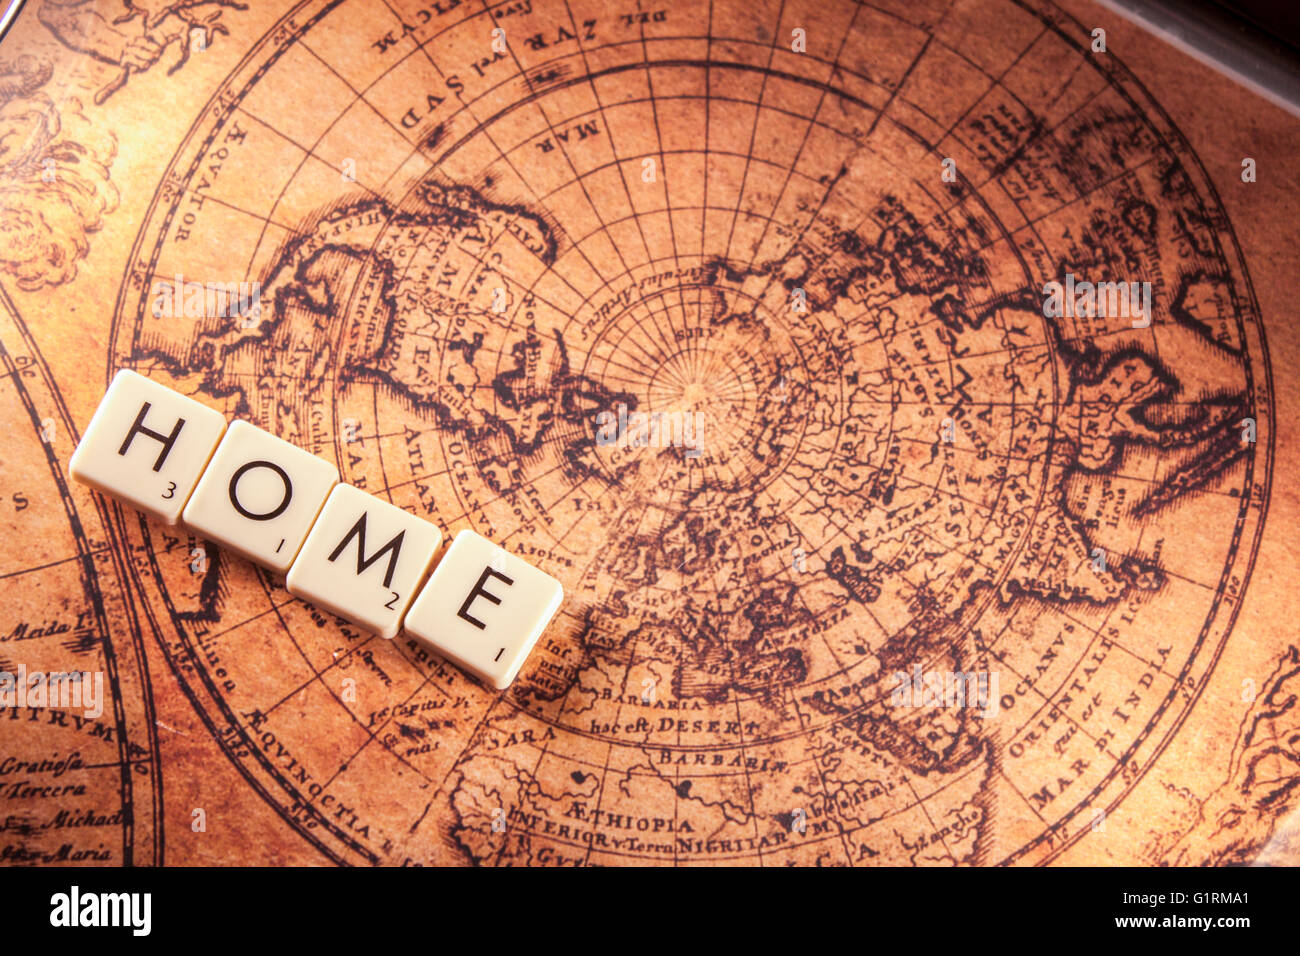 Russia map vector stock photos russia map vector stock images alamy the text home on a brown world map stock image gumiabroncs Images